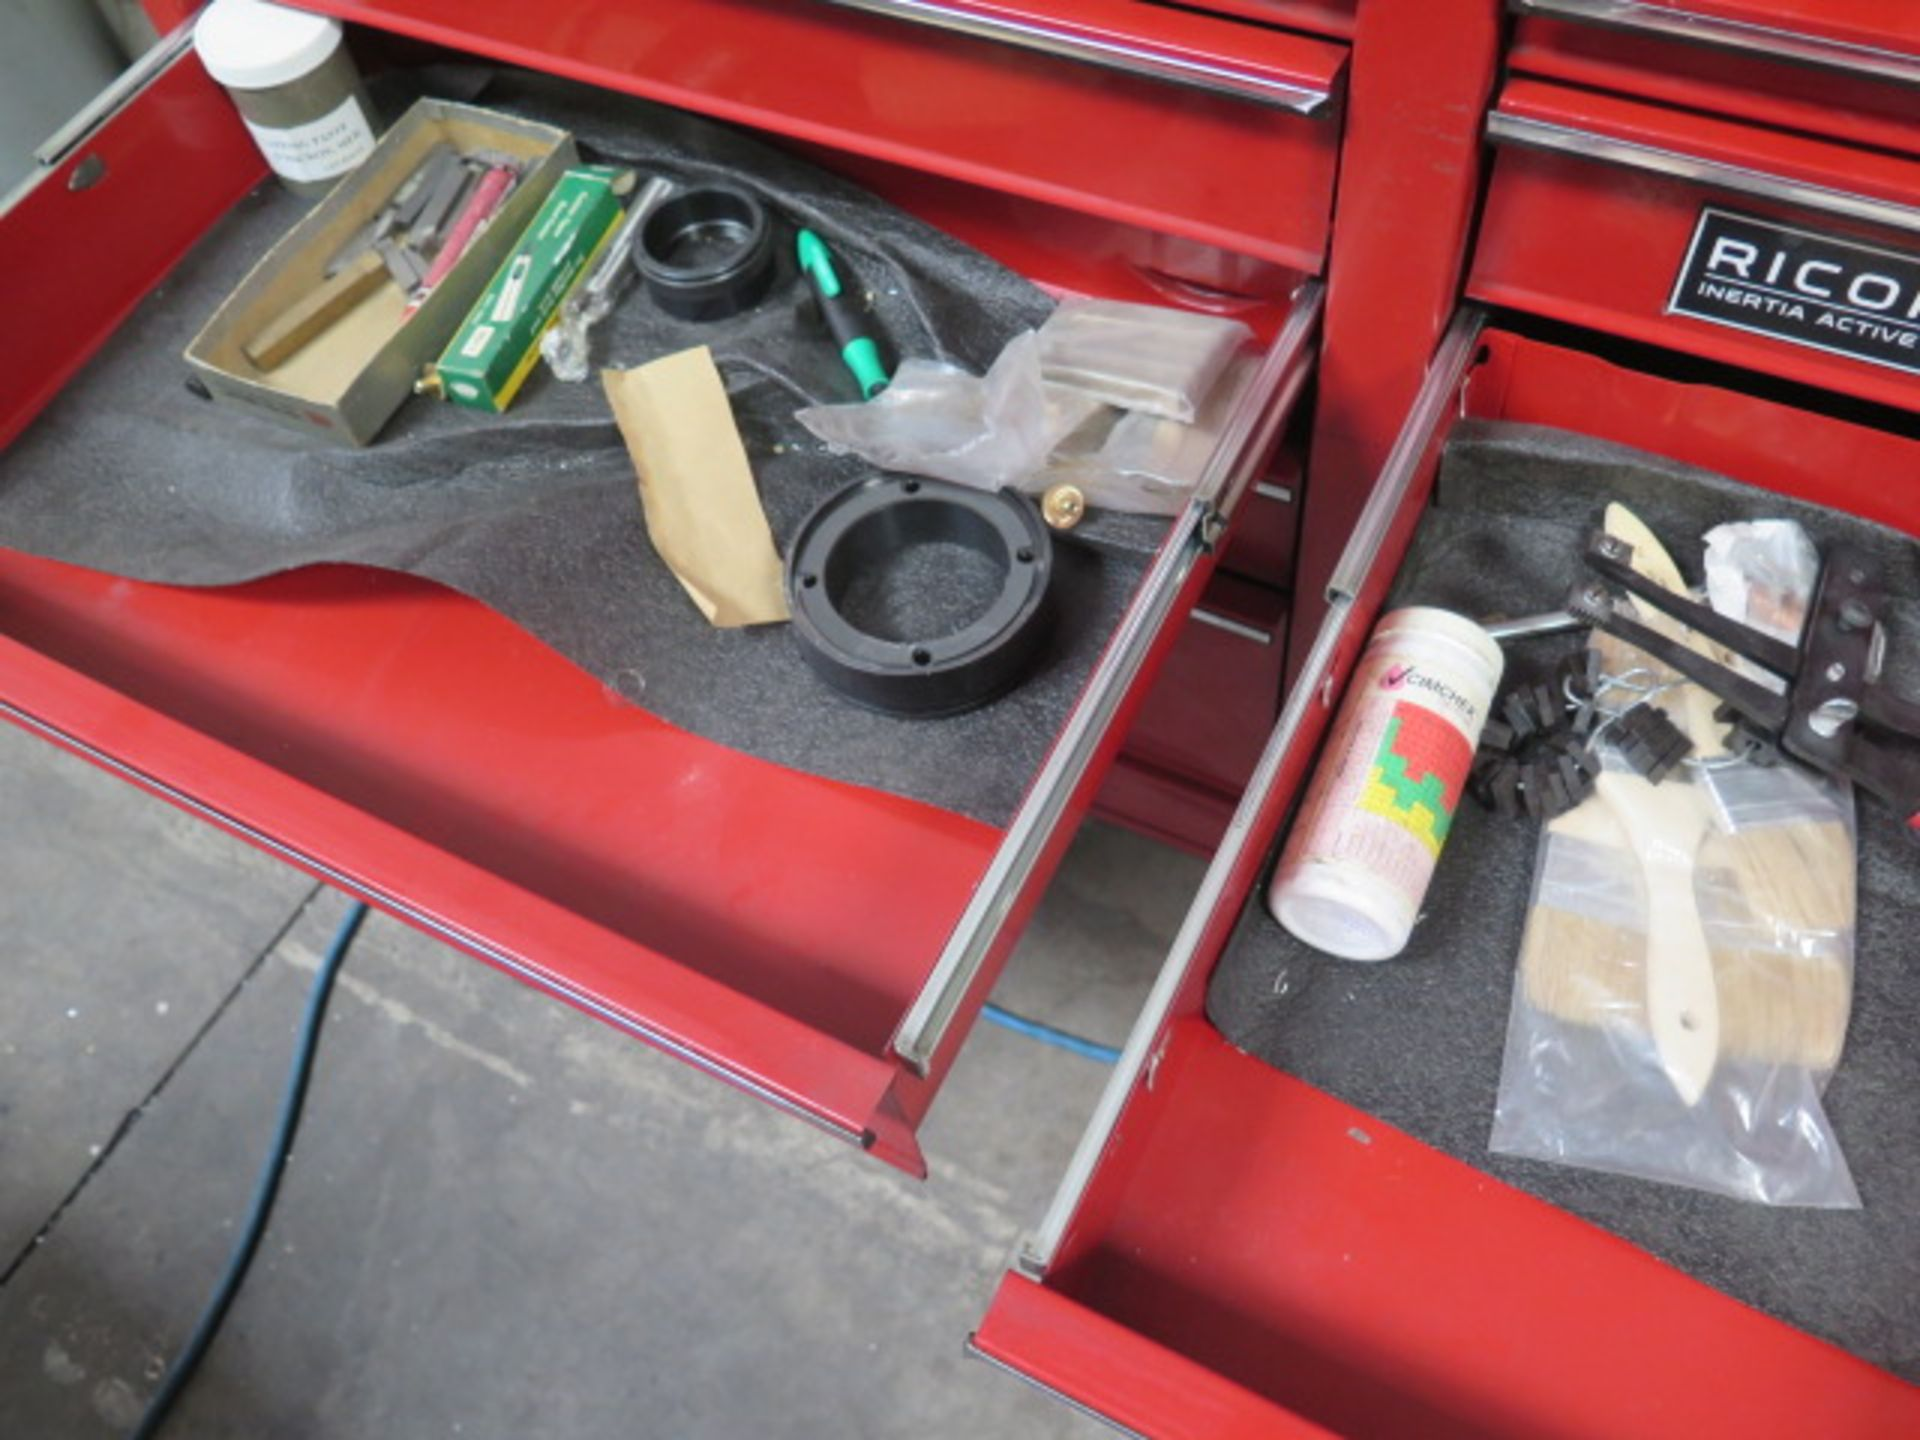 Roll-A-Way Tool Box w/ Misc Tools (SOLD AS-IS - NO WARRANTY) - Image 6 of 6